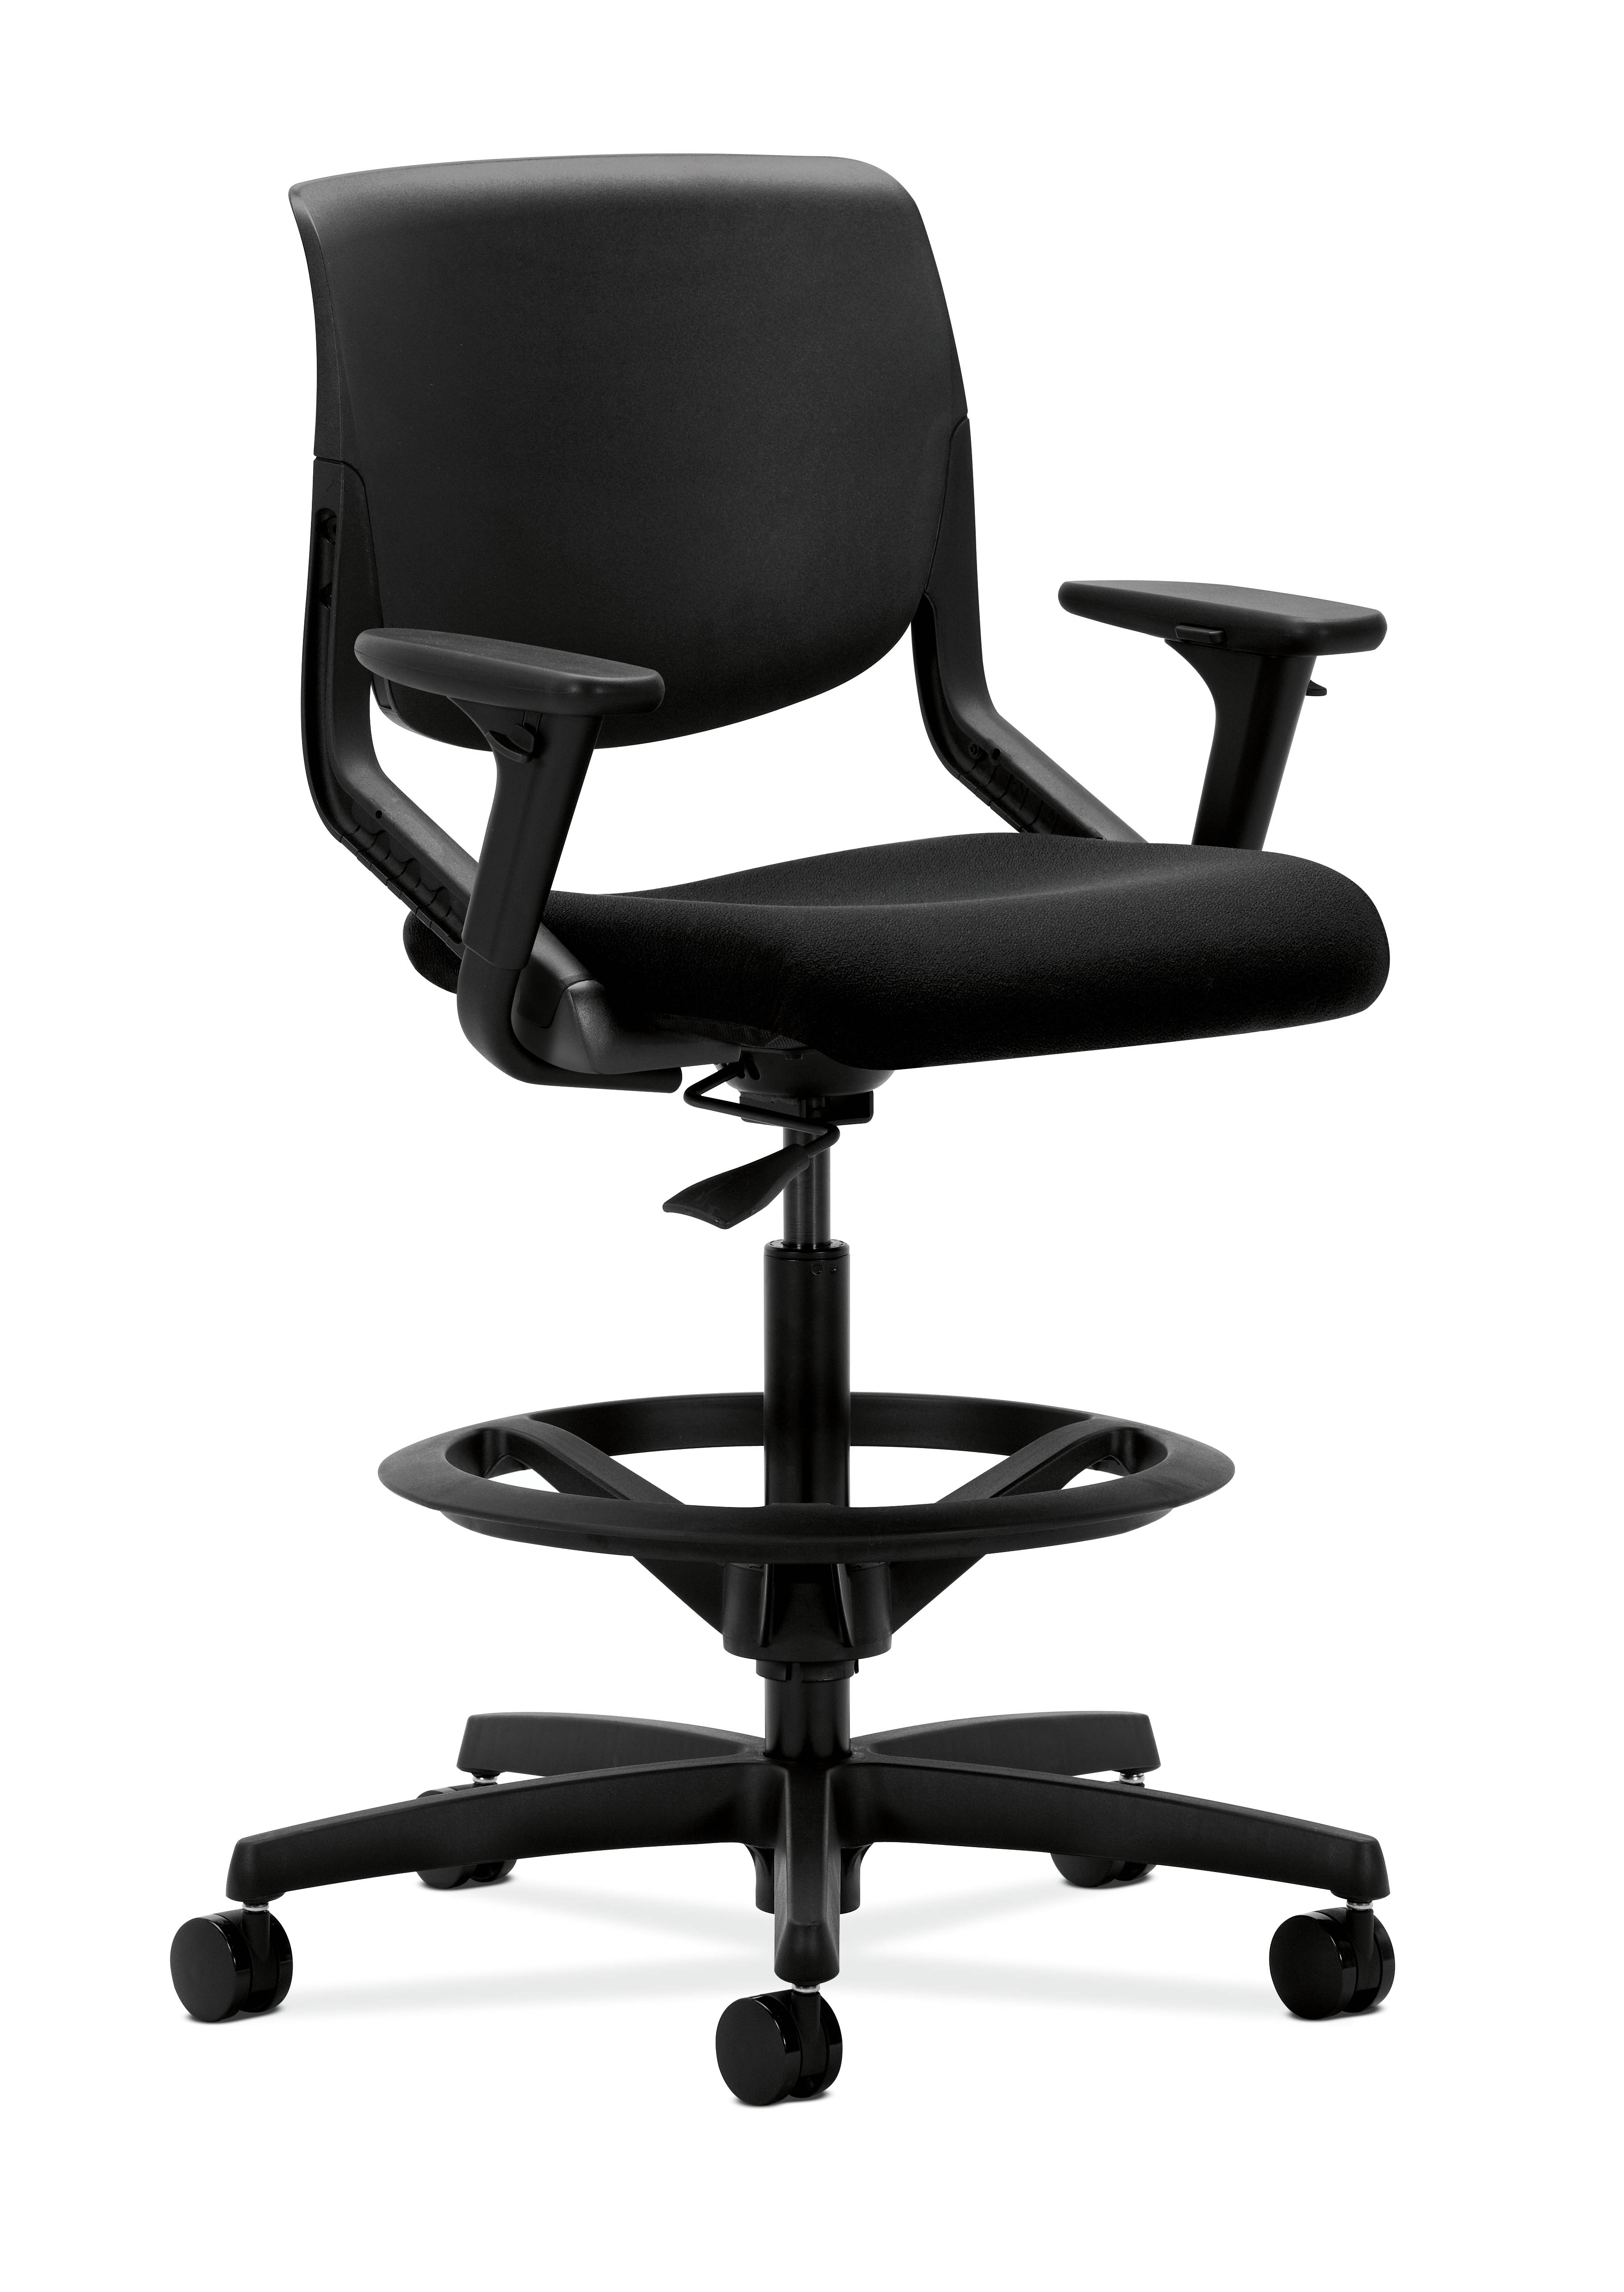 reclining executive chairs bariatric leg desk recliner laptop computer table chair size rest leather seat back high furniture covers adjustable with office massage full for of hon